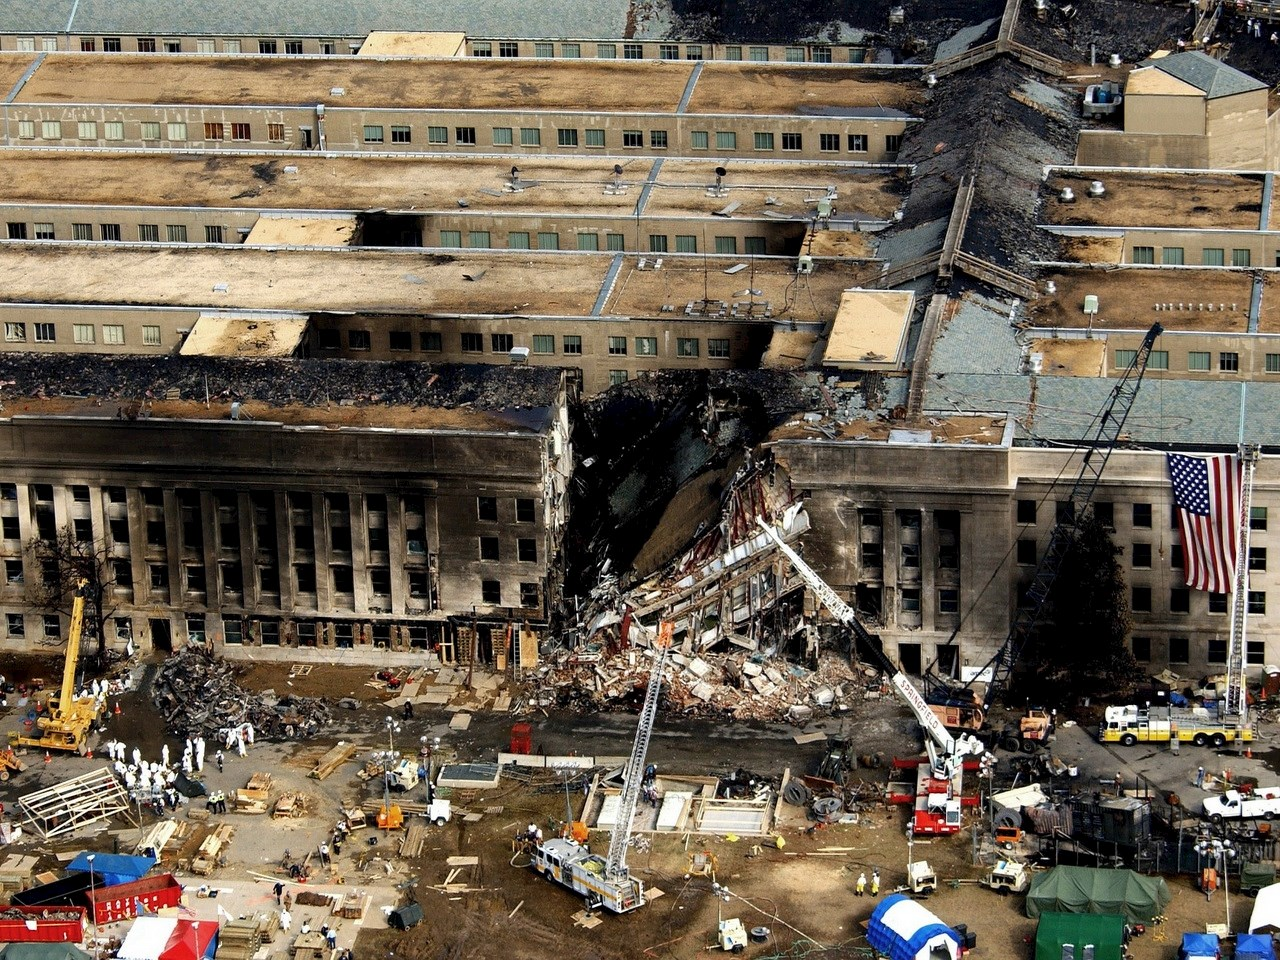 The Pentagon alleged hit by an airplane